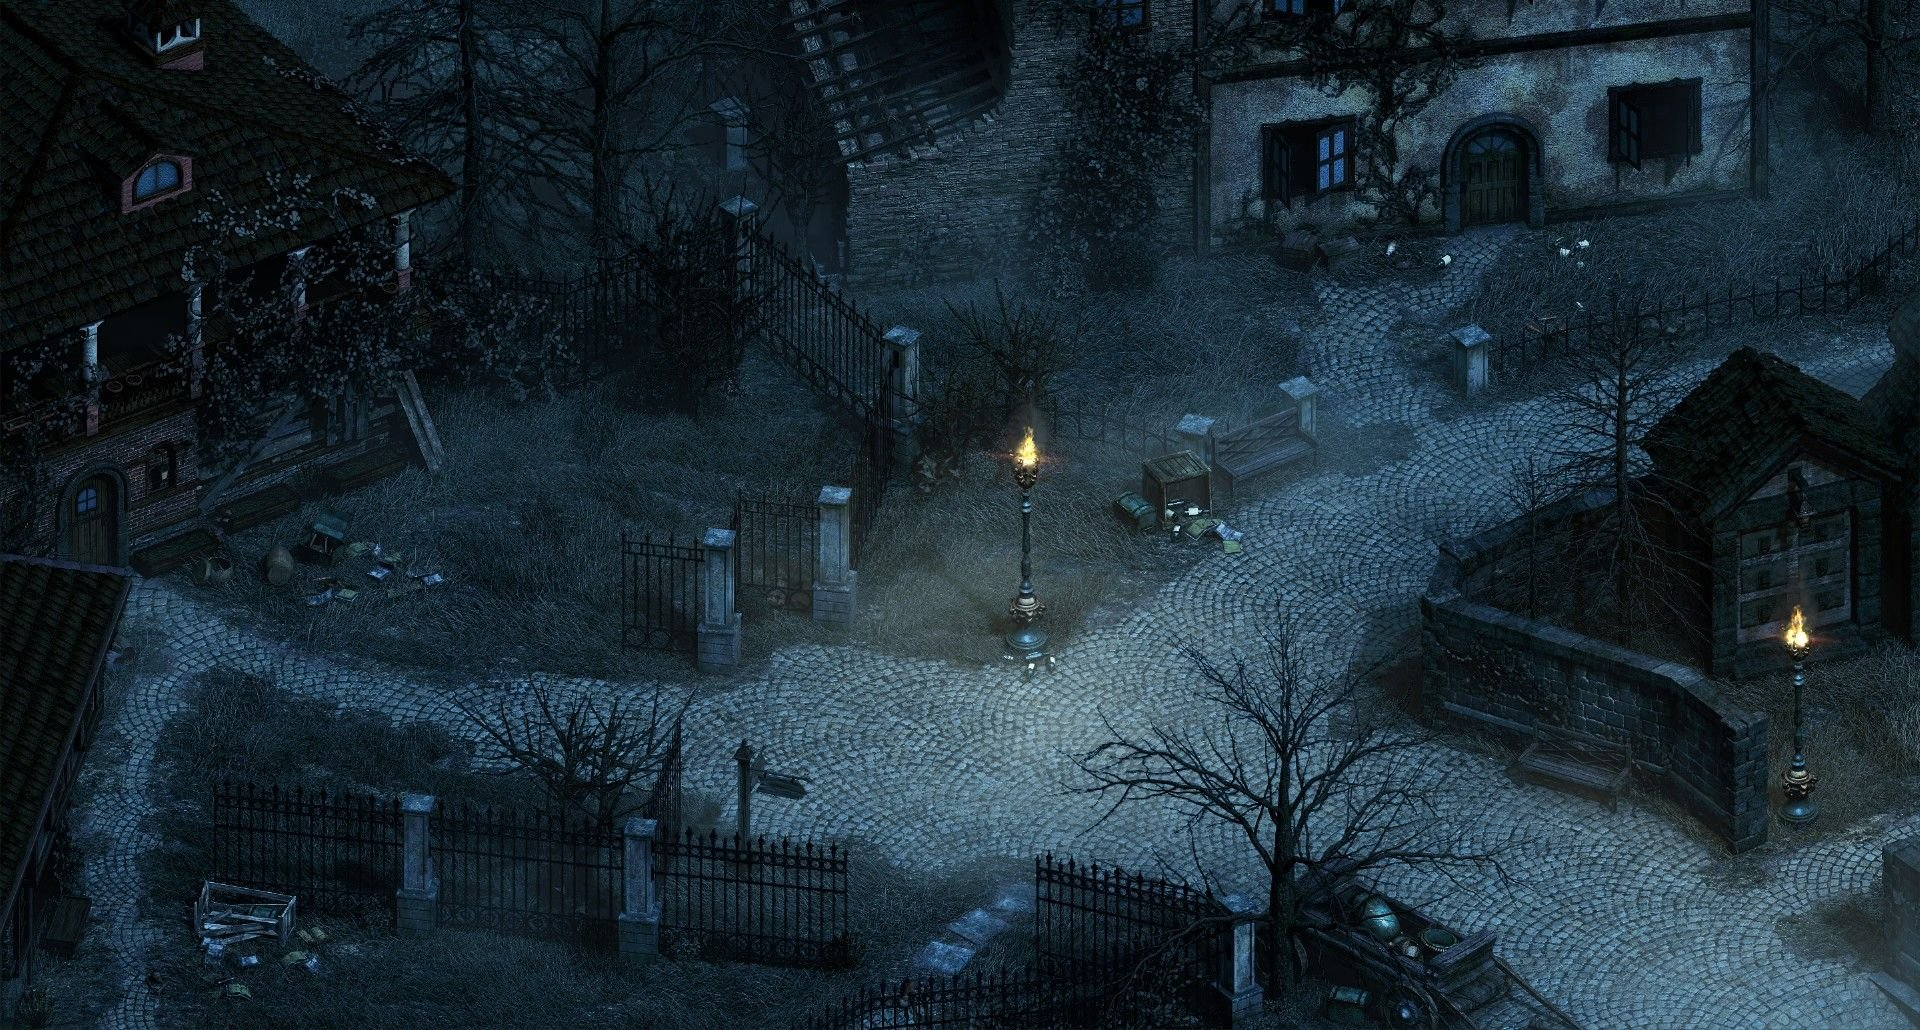 Pillars Of Eternity Wallpaper: PILLARS-OF-ETERNITY Fantasy Rpg Party-based Pillars